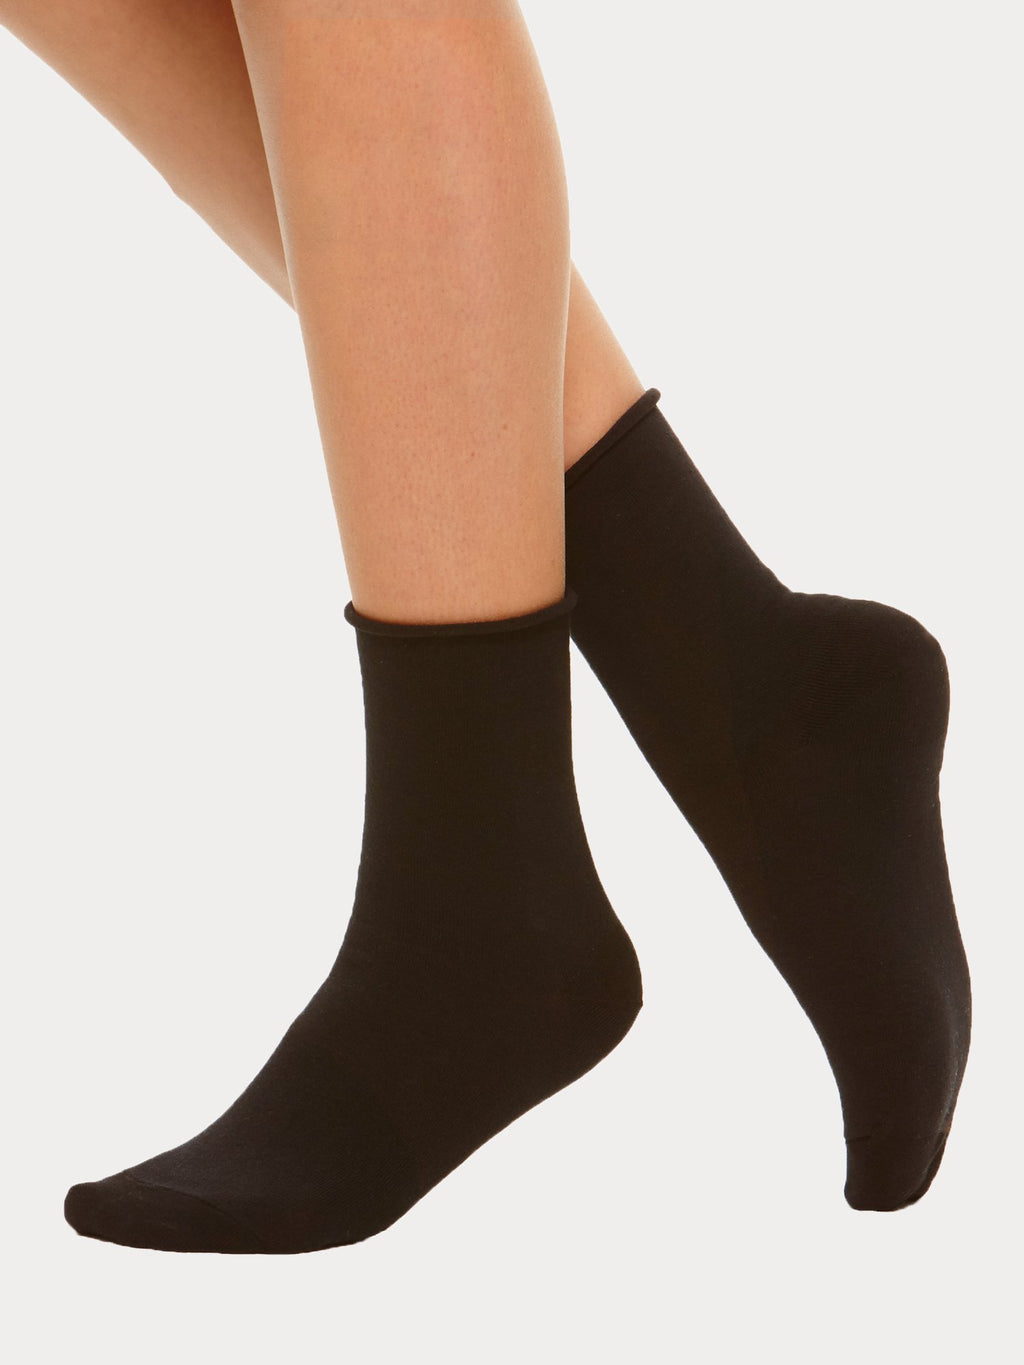 Vogue Comfort Top Socks